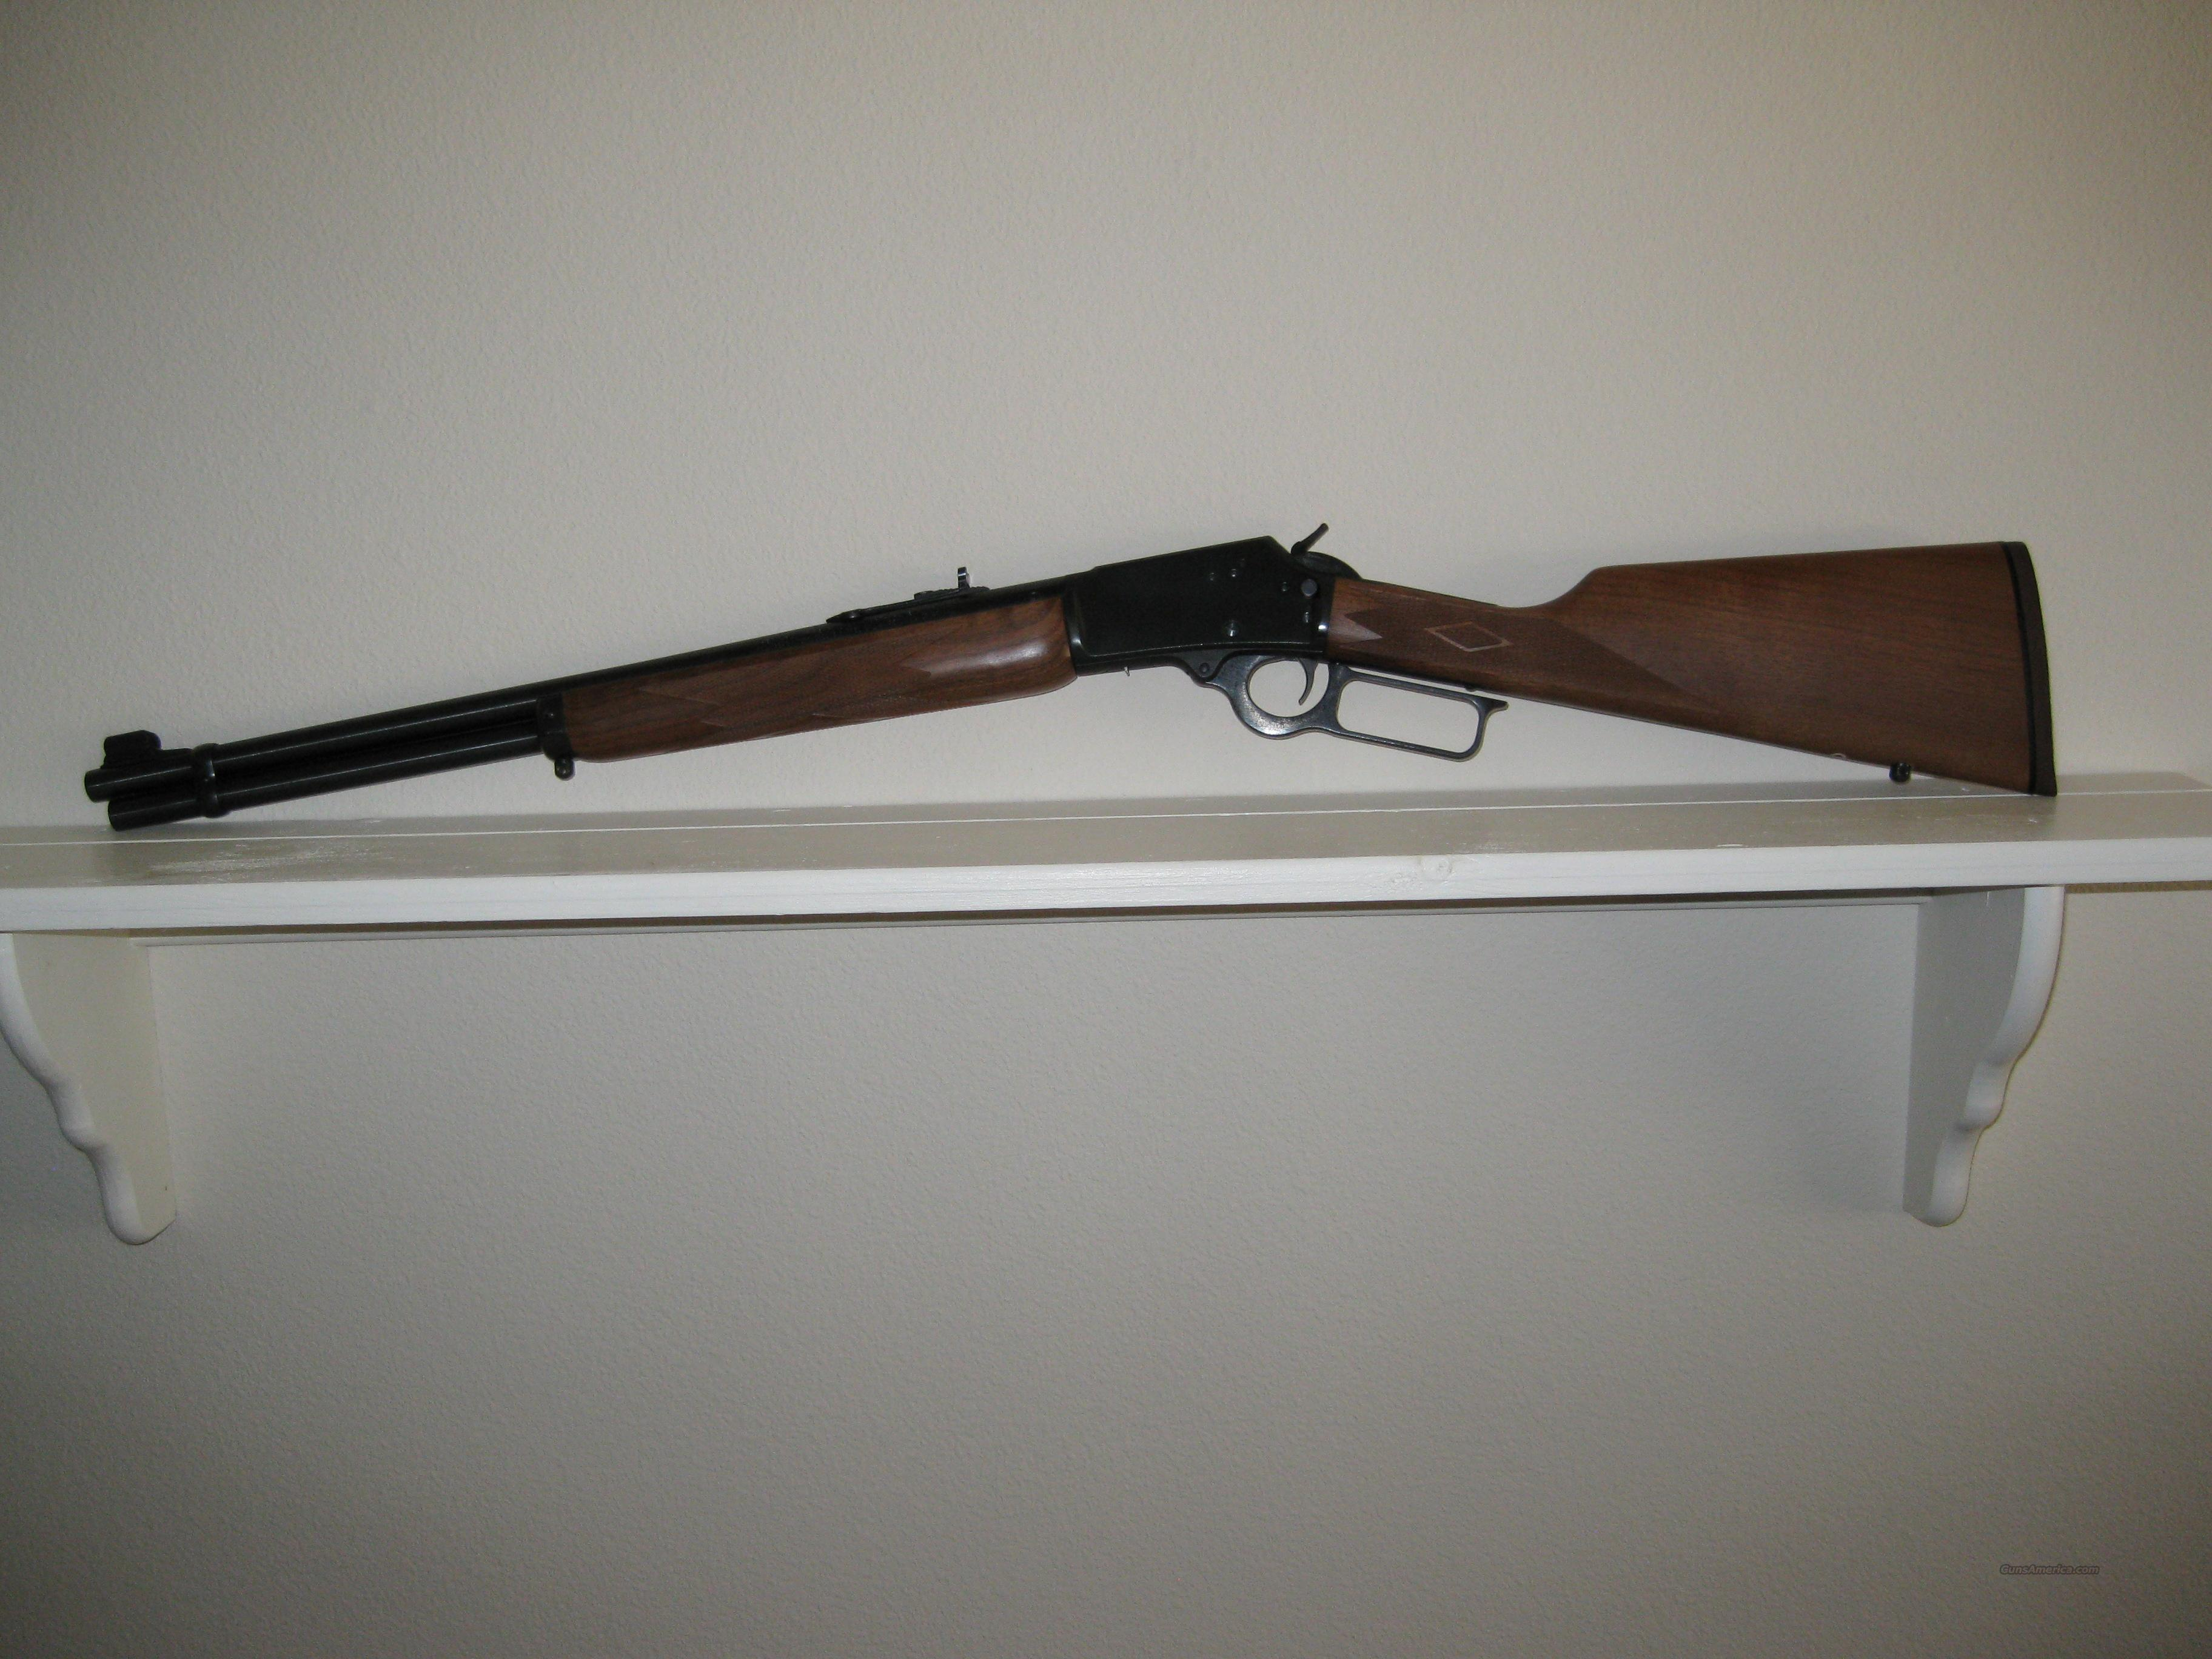 Marlin .44 Magnum/.44 Special  Guns > Rifles > Marlin Rifles > Modern > Lever Action